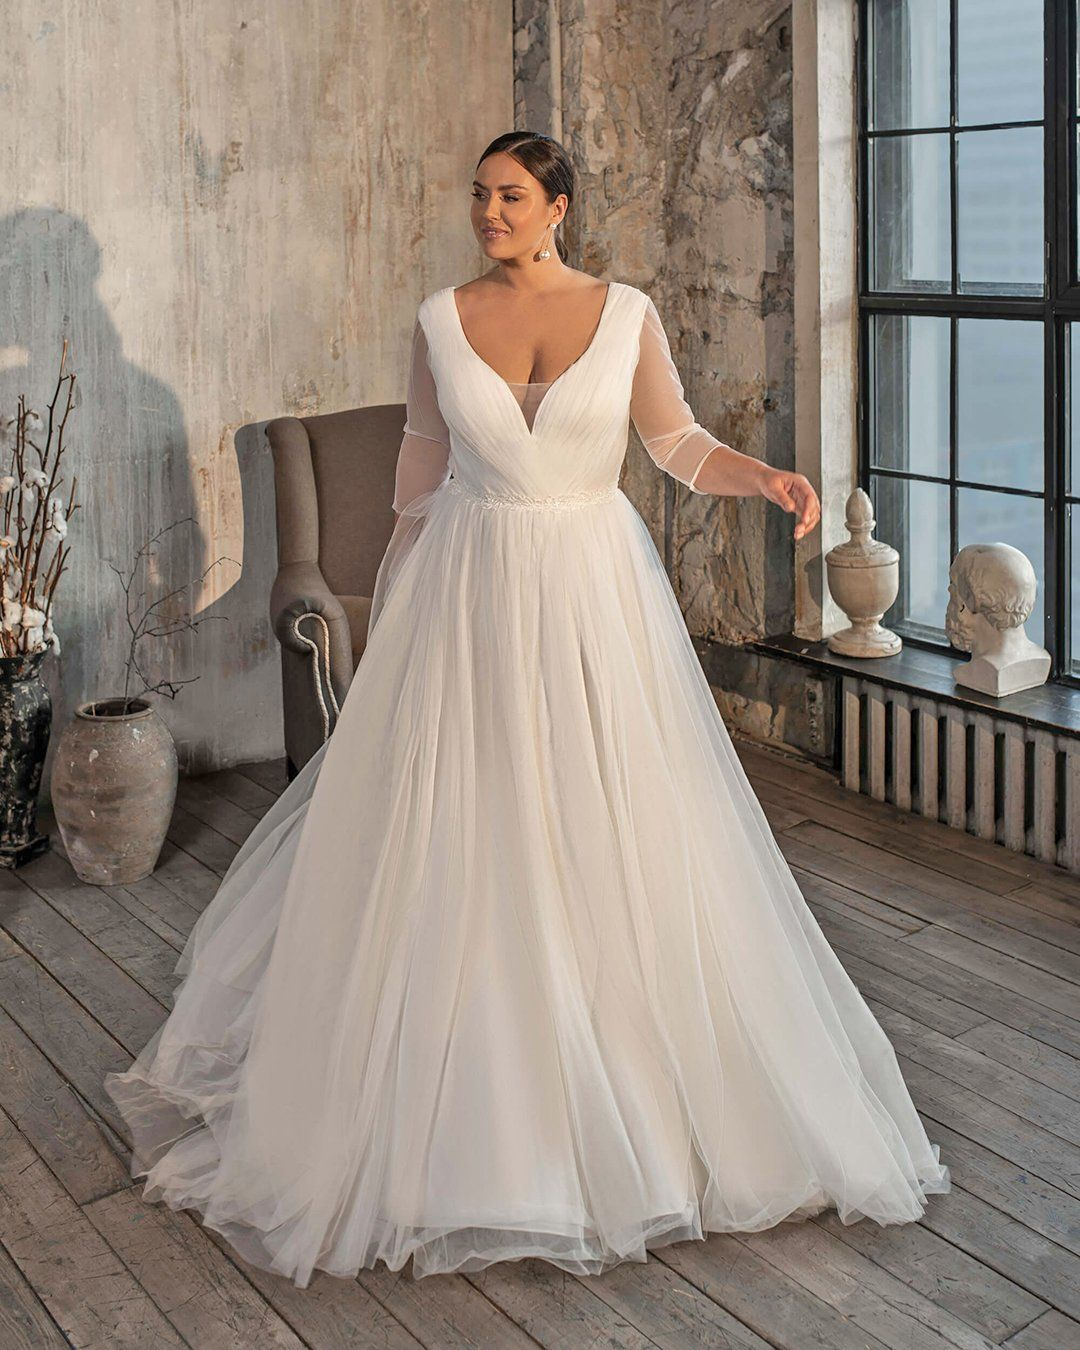 20 Plus Size Wedding Dresses A Jaw Dropping Guide   Wedding ...